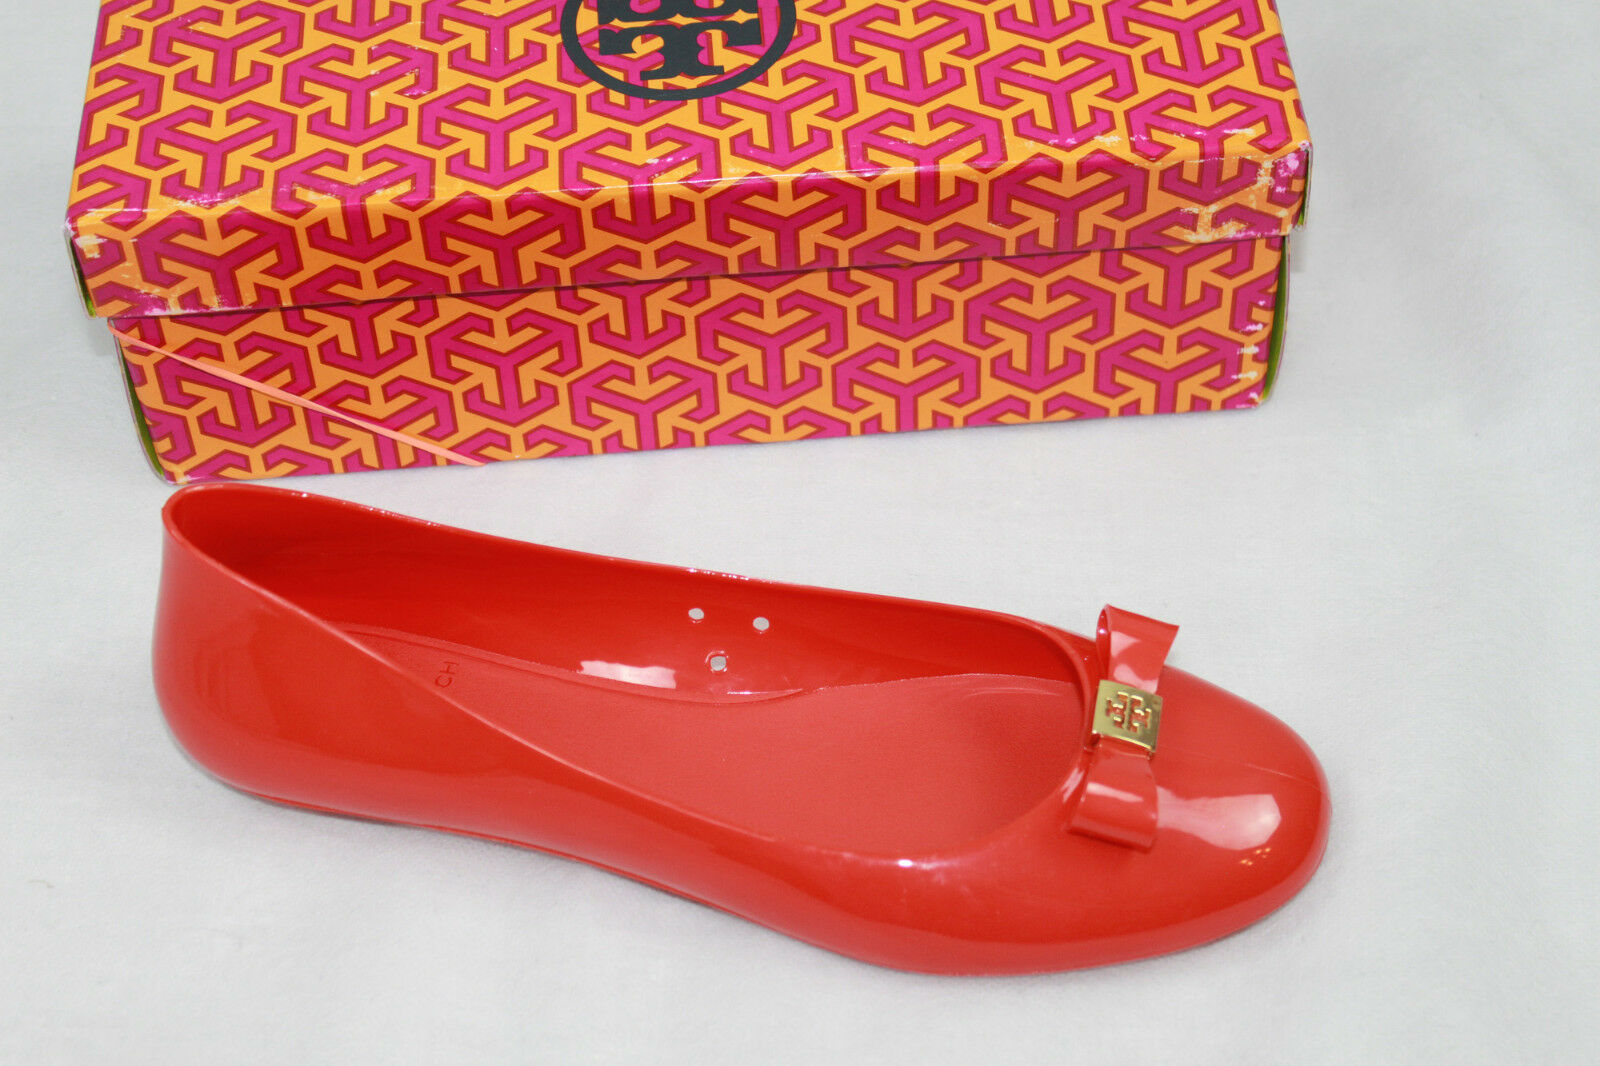 AUTH Ballet Tory Burch Damens Flame ROT Jelly Ballet AUTH With Bow Flat Schuhes e48ff3